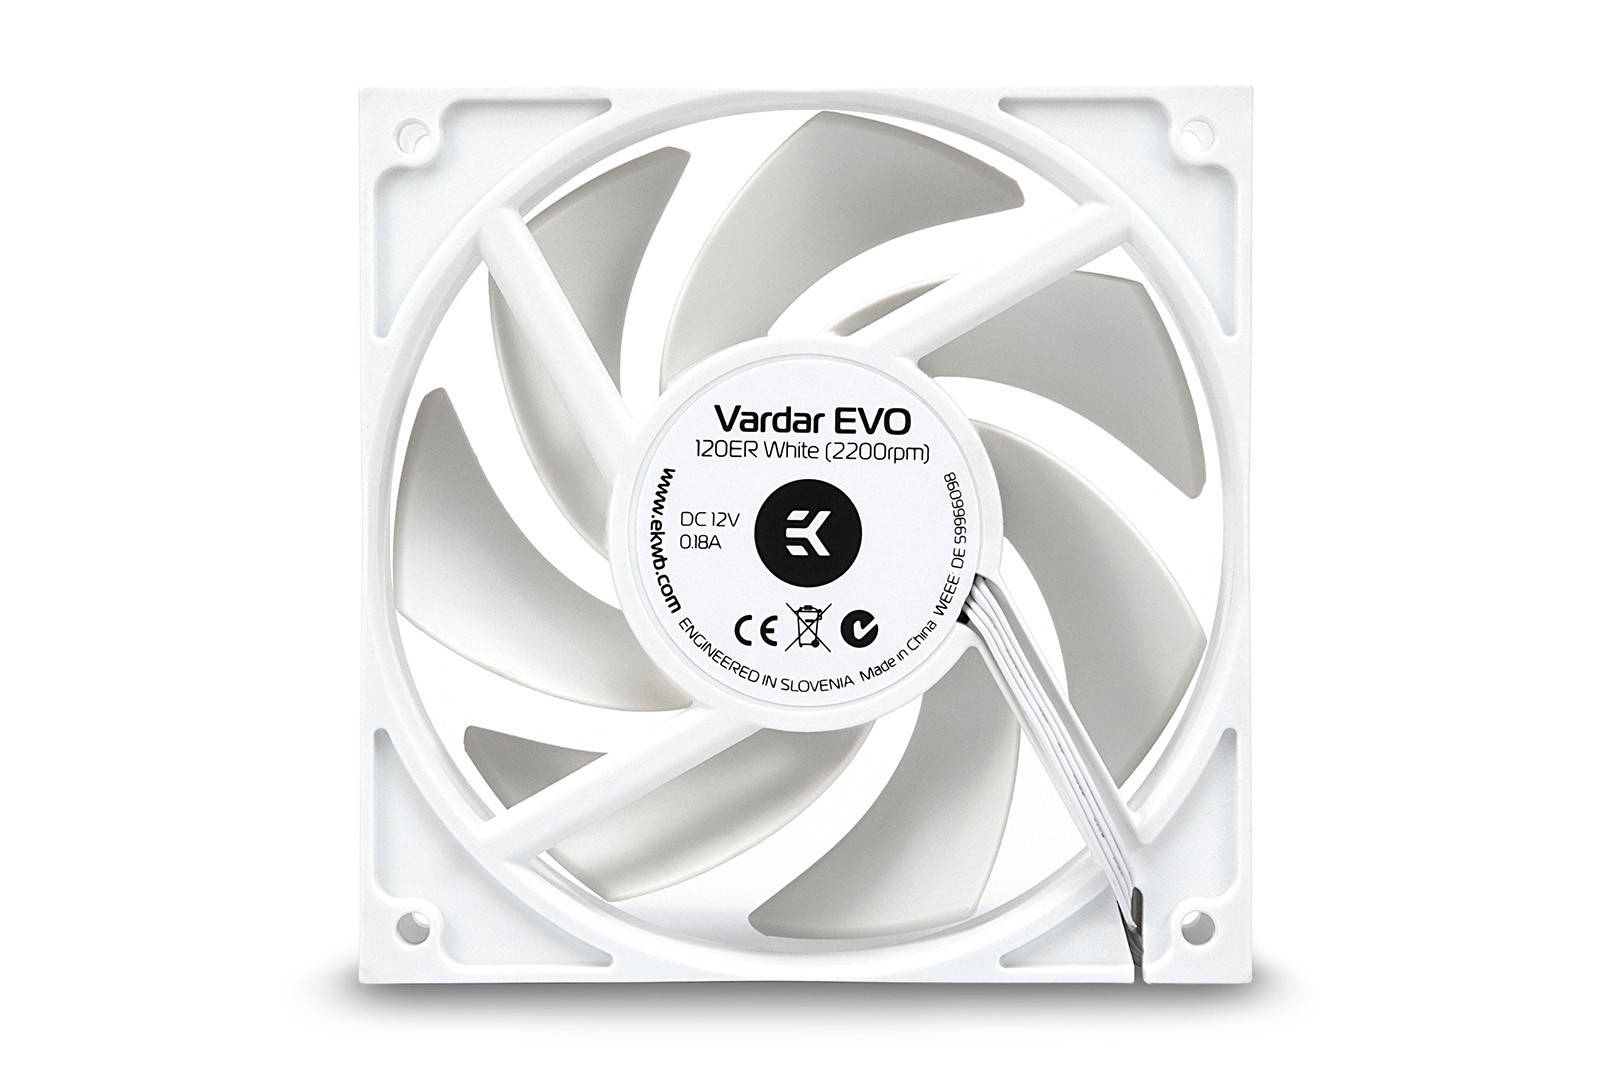 EK WaterBlocks EK-Vardar EVO 120ER White BB (500-2200rpm)